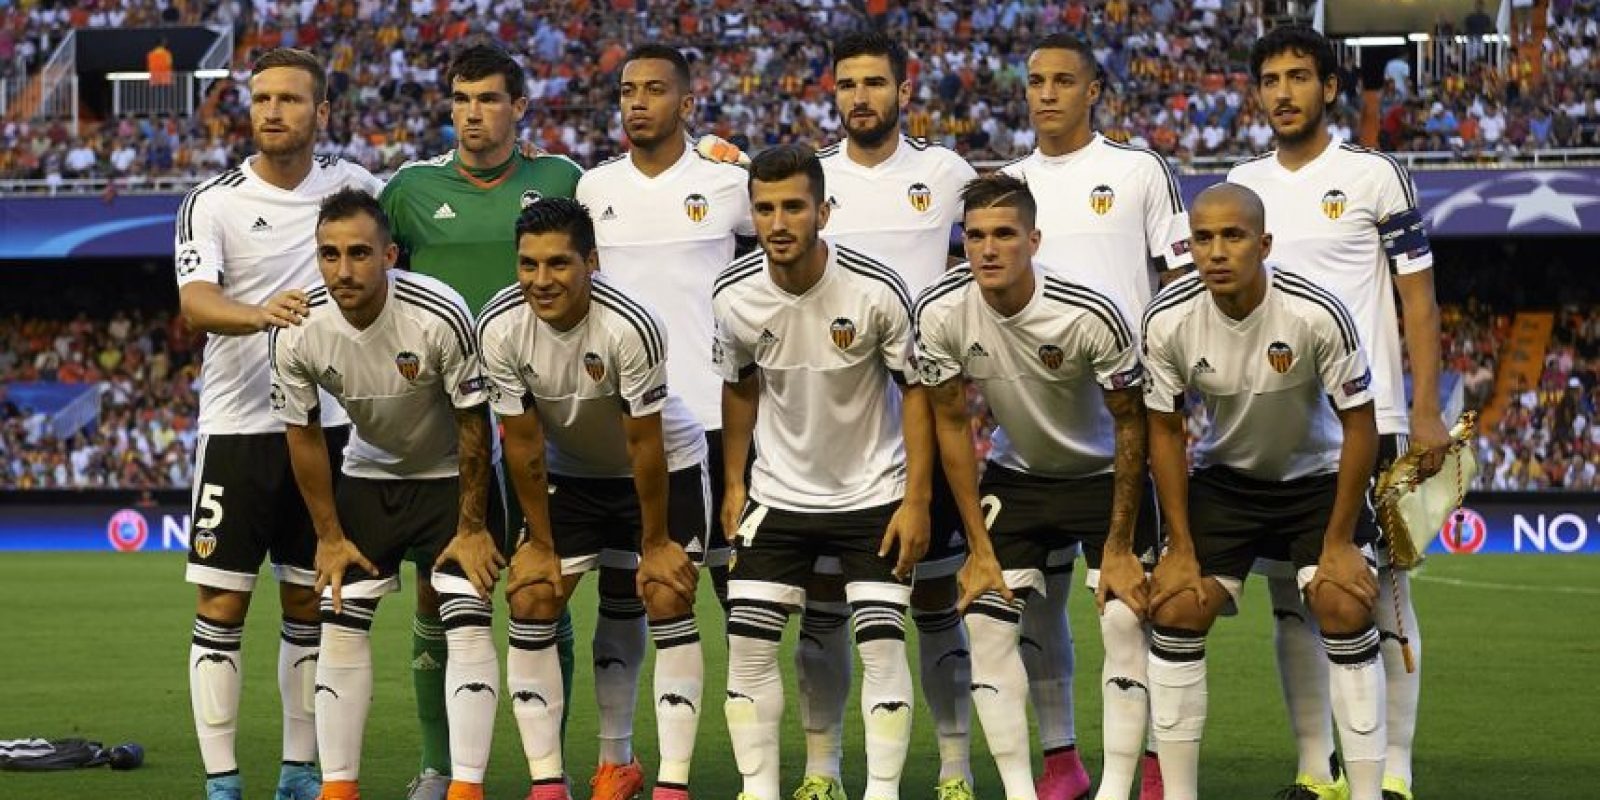 Valencia (4º en 2014/2015) Foto: Getty Images